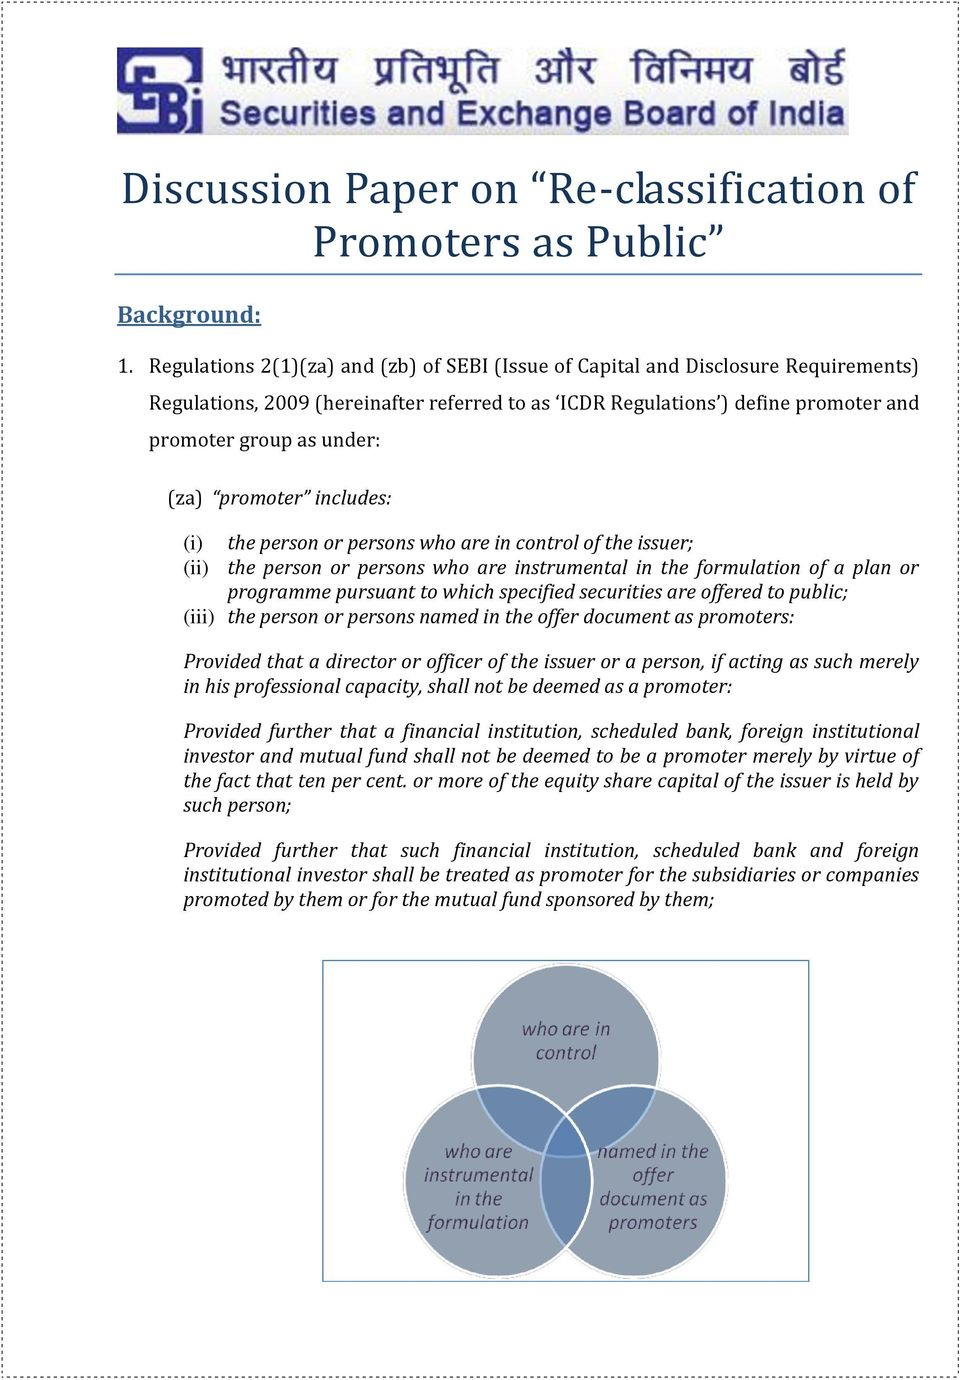 promoter includes: (i) the person or persons who are in control of the issuer; (ii) the person or persons who are instrumental in the formulation of a plan or programme pursuant to which specified